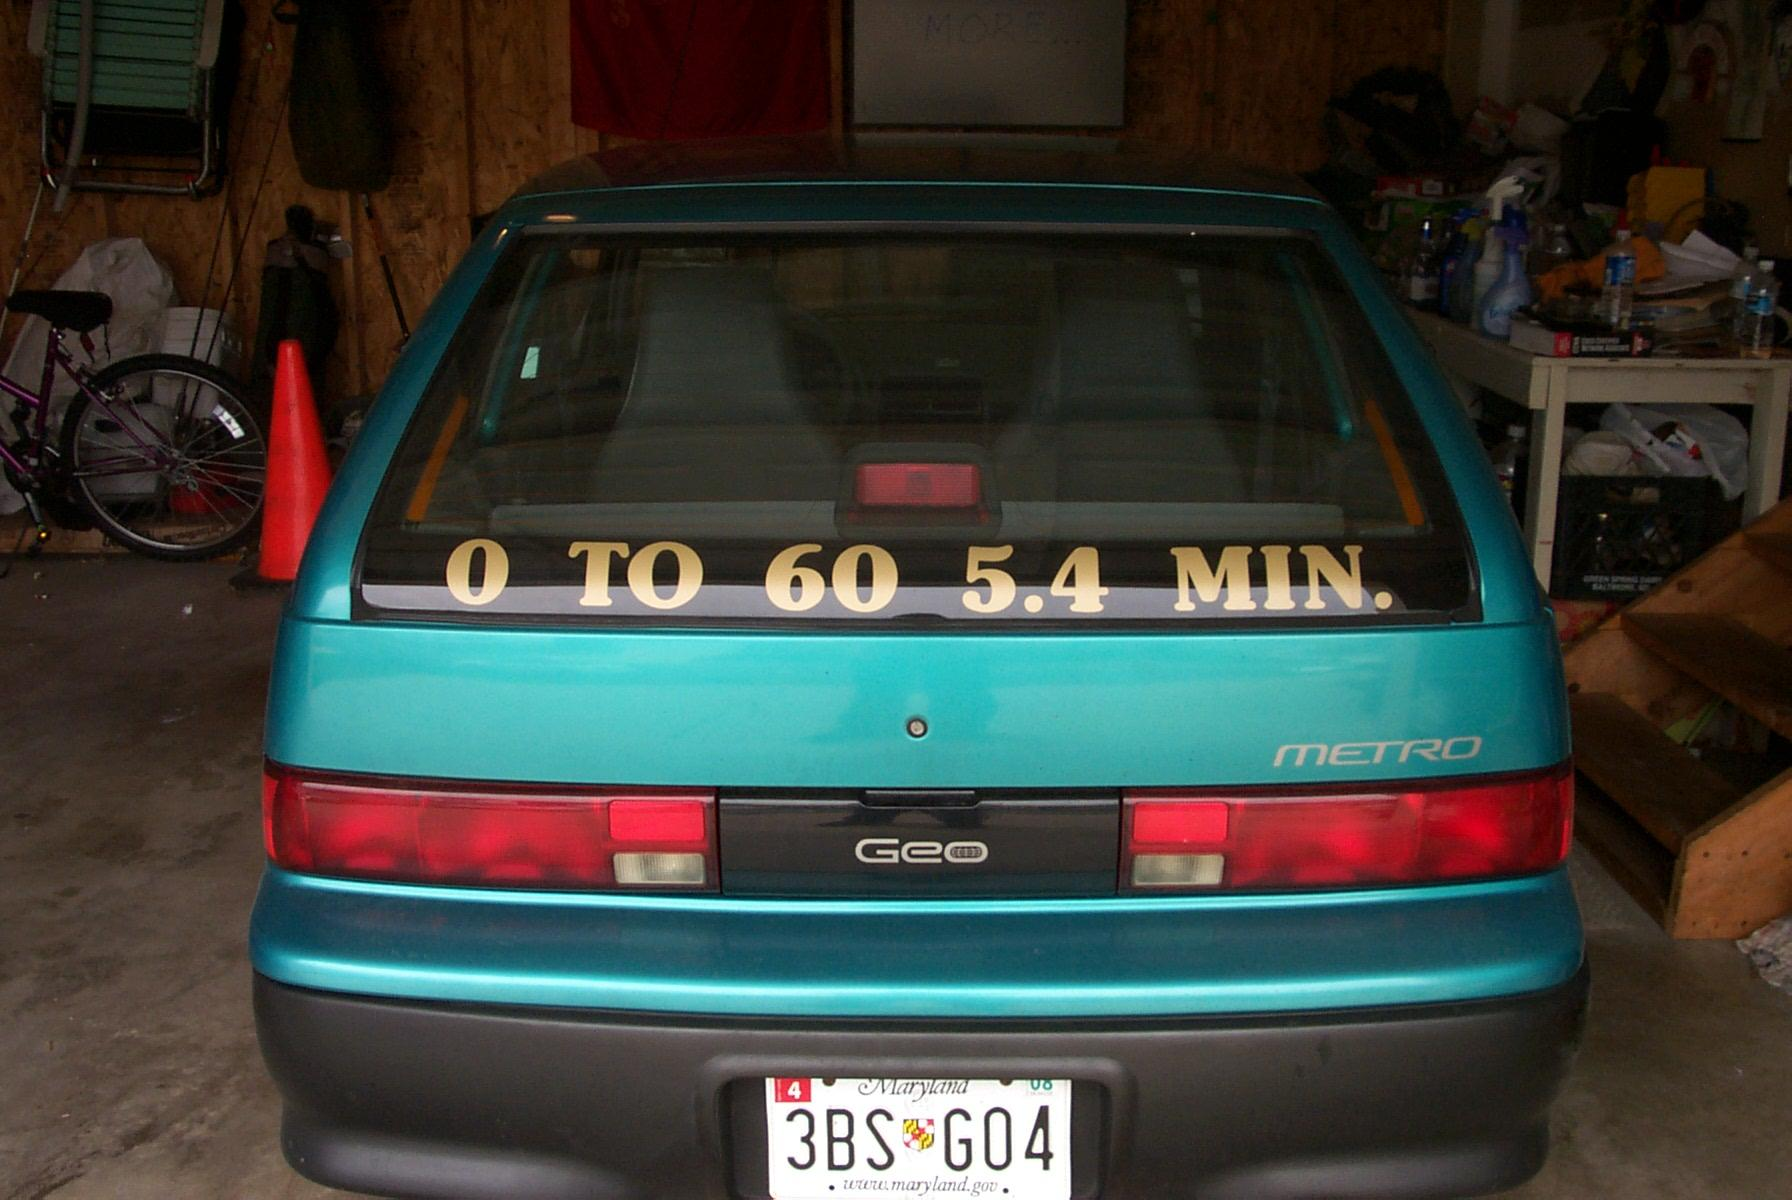 1994 Geo Metro Mrspikes39s Profile In Thurmont Md Cardomaincom